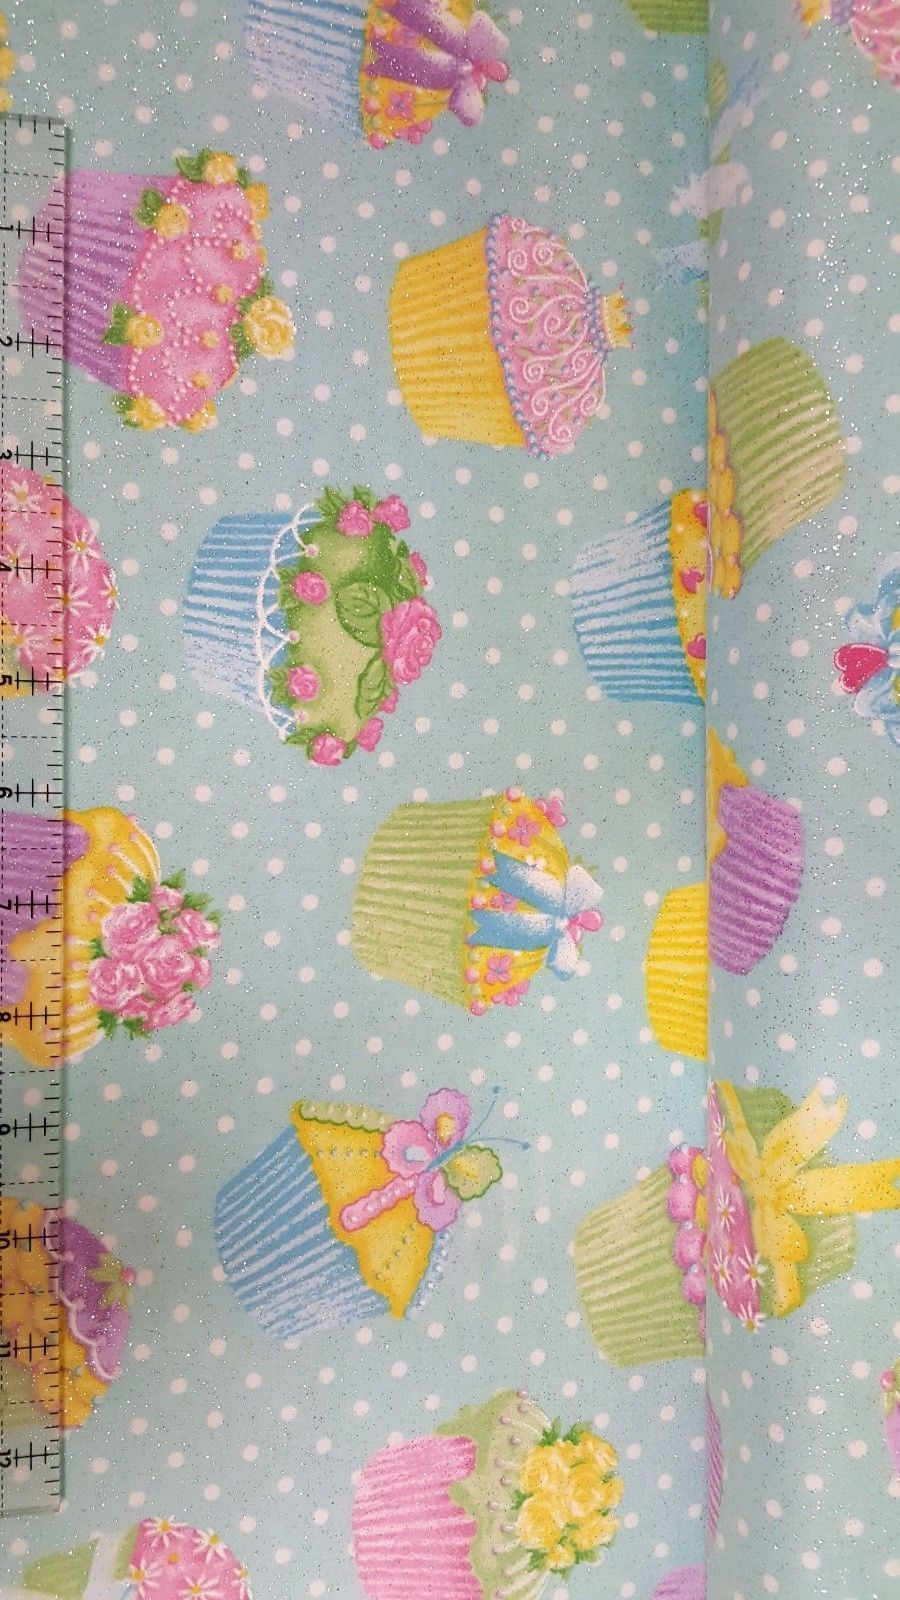 Fabric Traditions Flannel Glitter Cupcake Aqua 100% cotton fabric by the yard